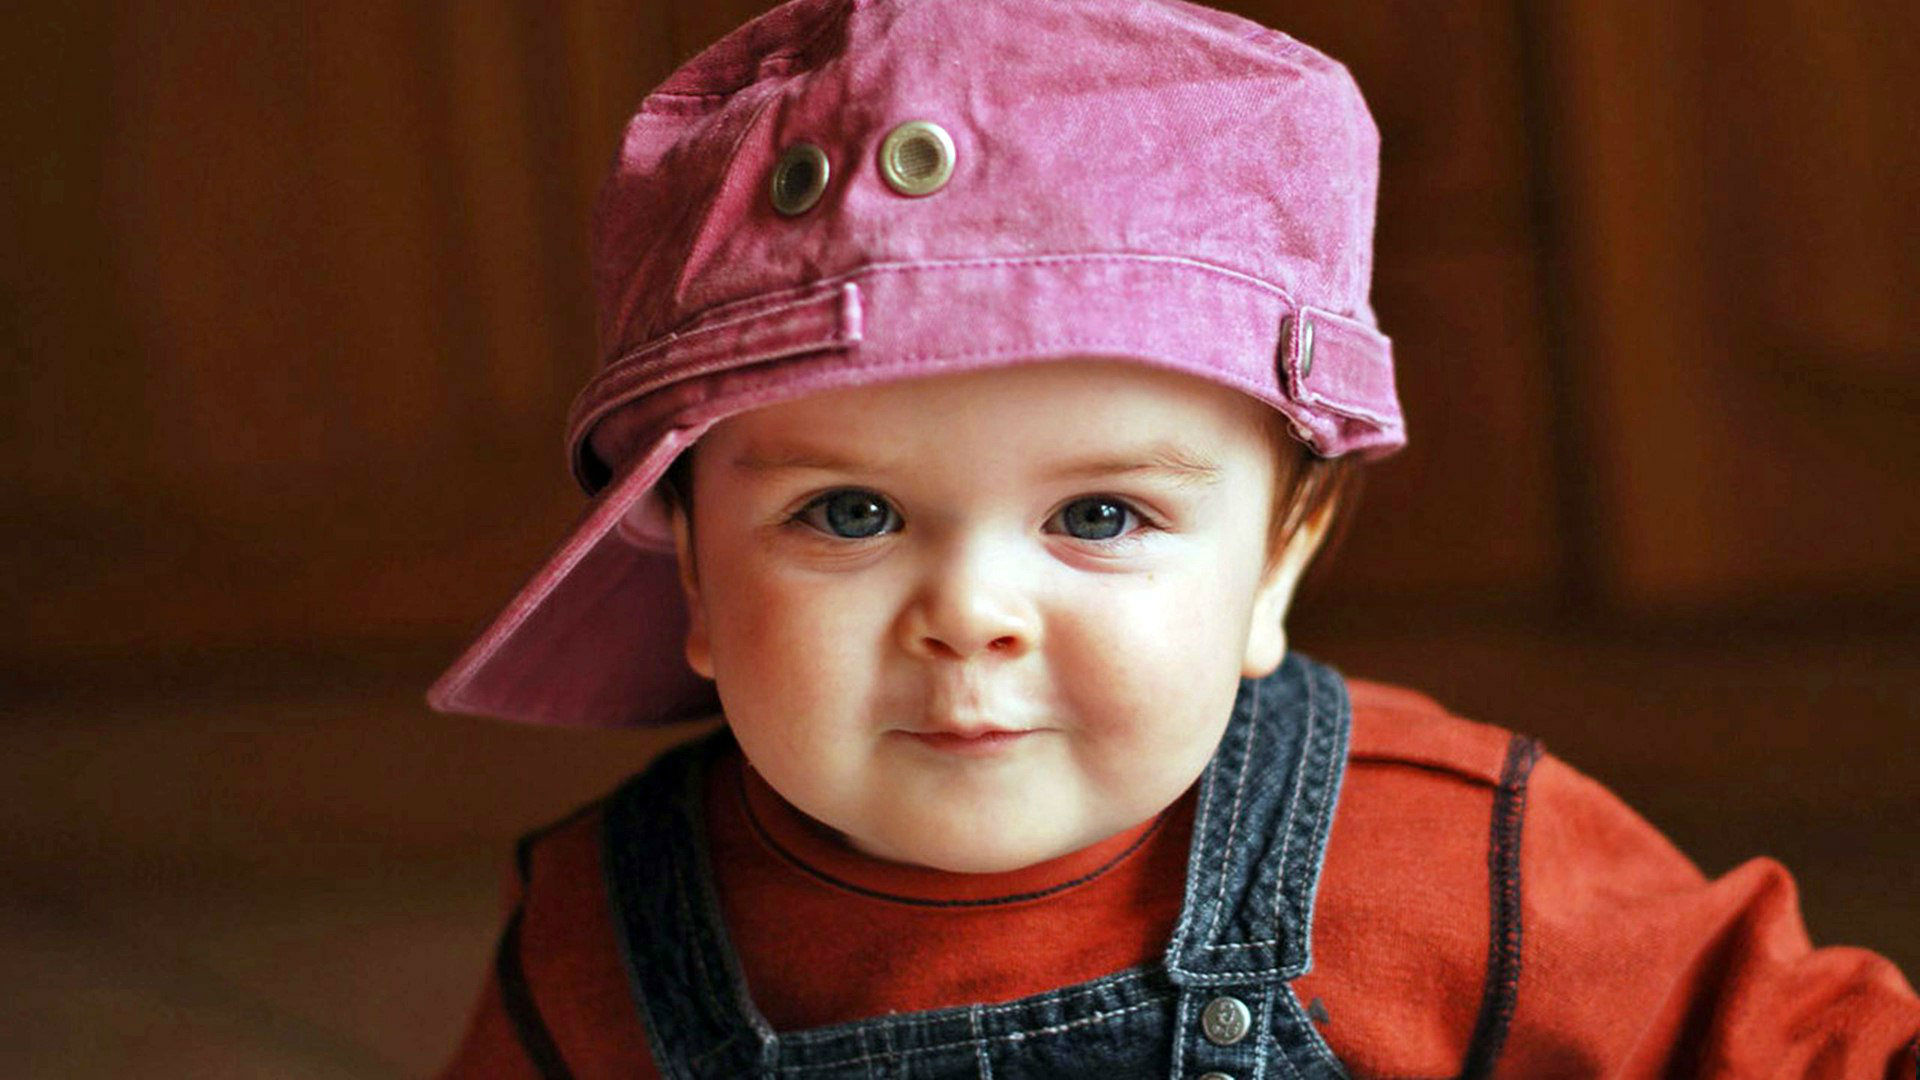 Cute Baby Boy HD Wallpapers Download HD Wallpapers 1920x1080